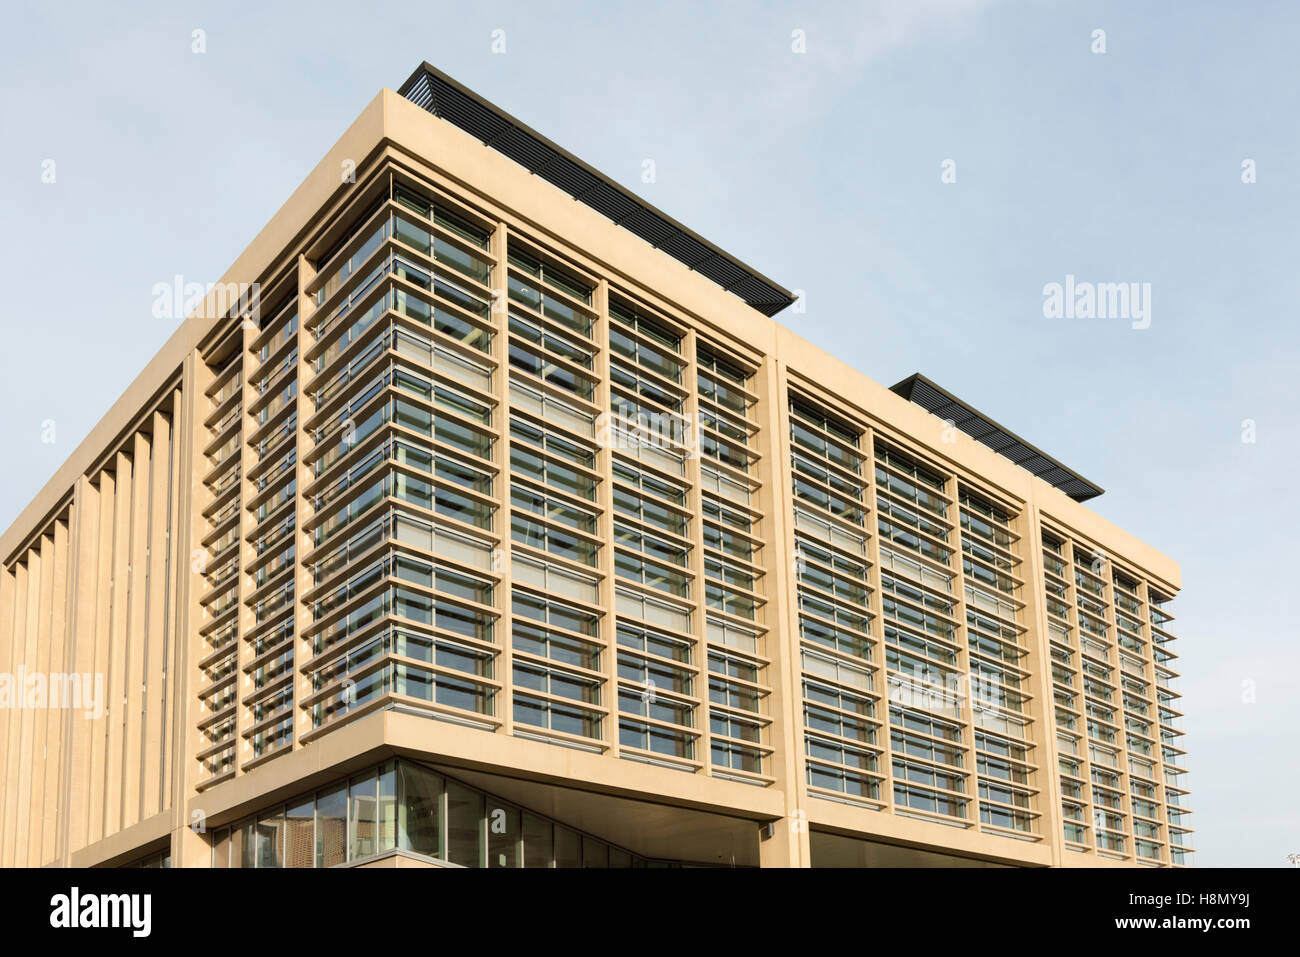 The Microsoft Office building in Station Road Cambridge UK - Stock Image